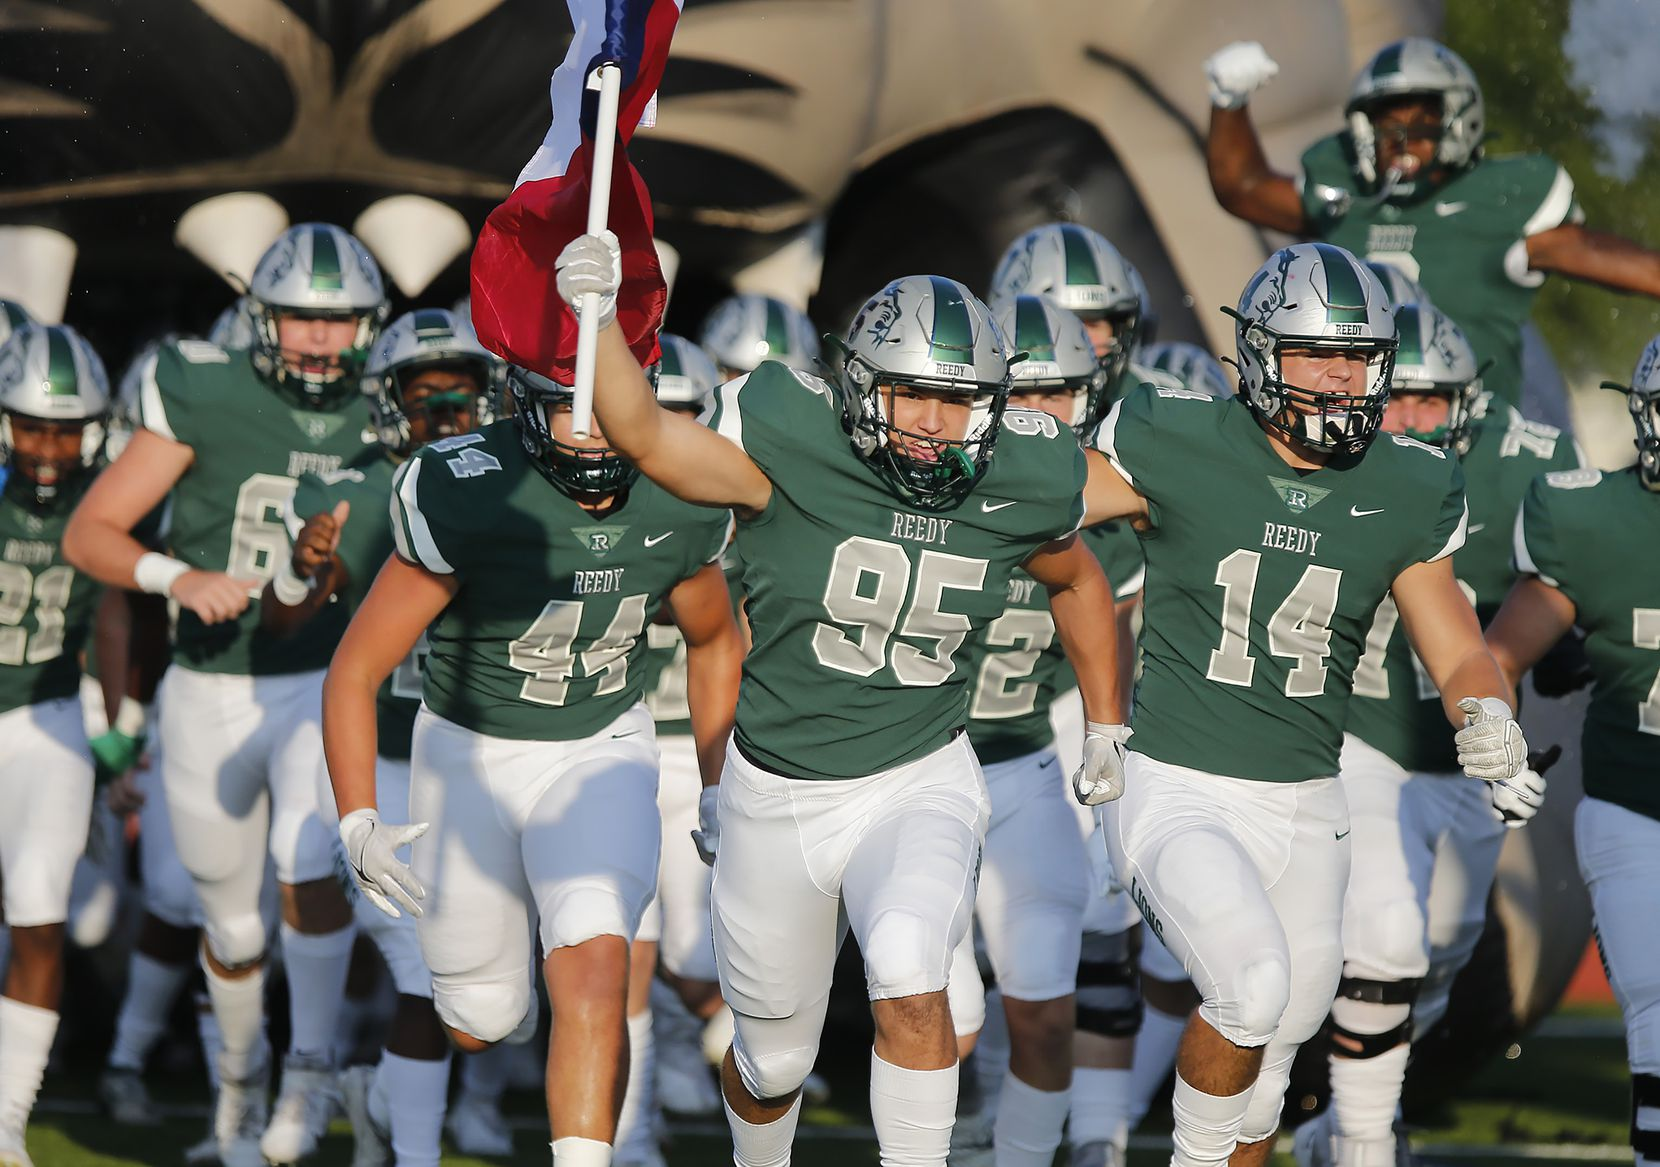 Reedy defensive tackle Chase Miller (95) leads his team onto the field holding the Texas flag before kickoff as Reedy High School hosted Frisco Liberty High School at David Kuykendall Stadium in Frisco on Wednesday night, August 26, 2021. (Stewart F. House/Special Contributor)